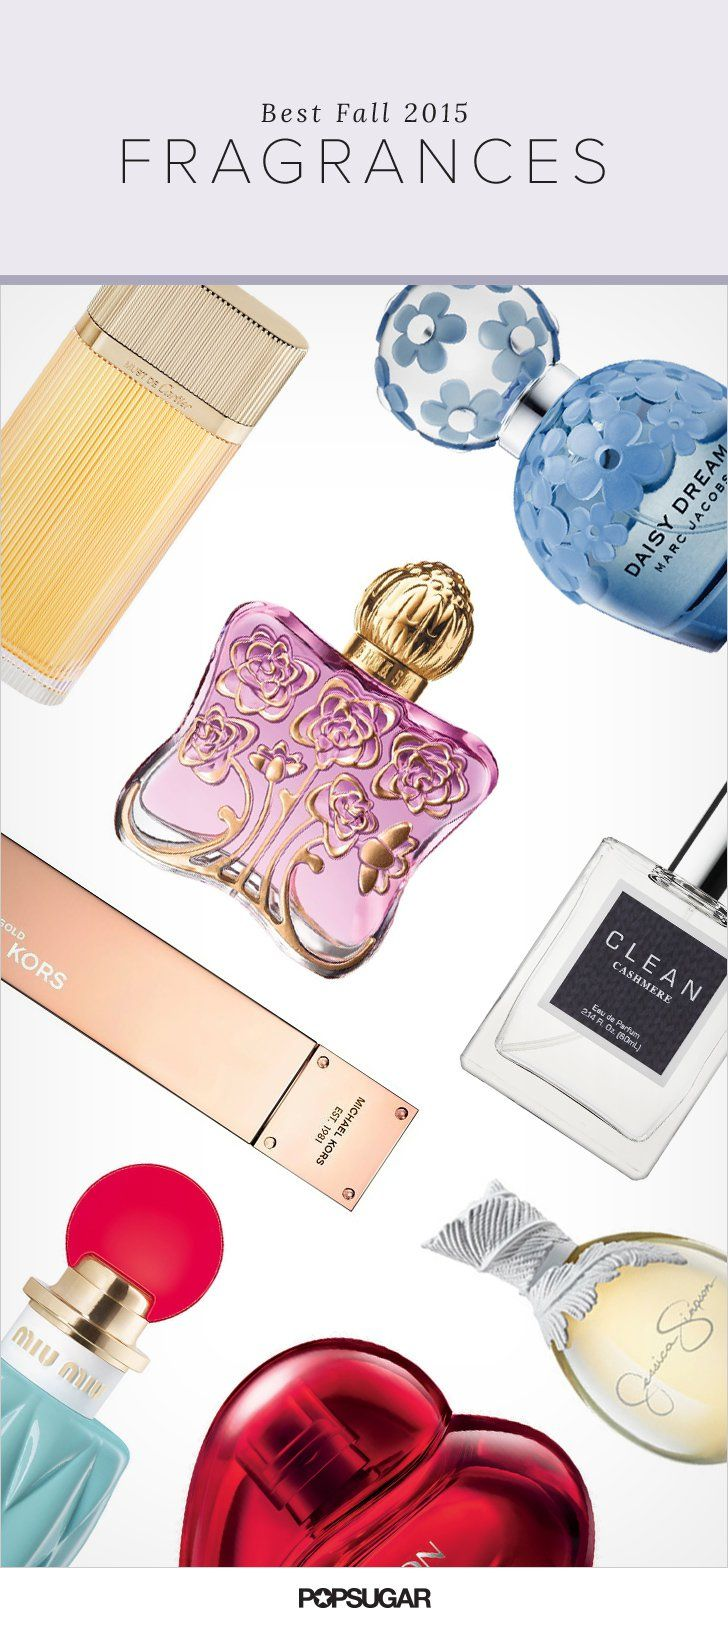 Pin for Later: 15 New Fragrances You Need to Spritz Yourself With This Fall Pin It!